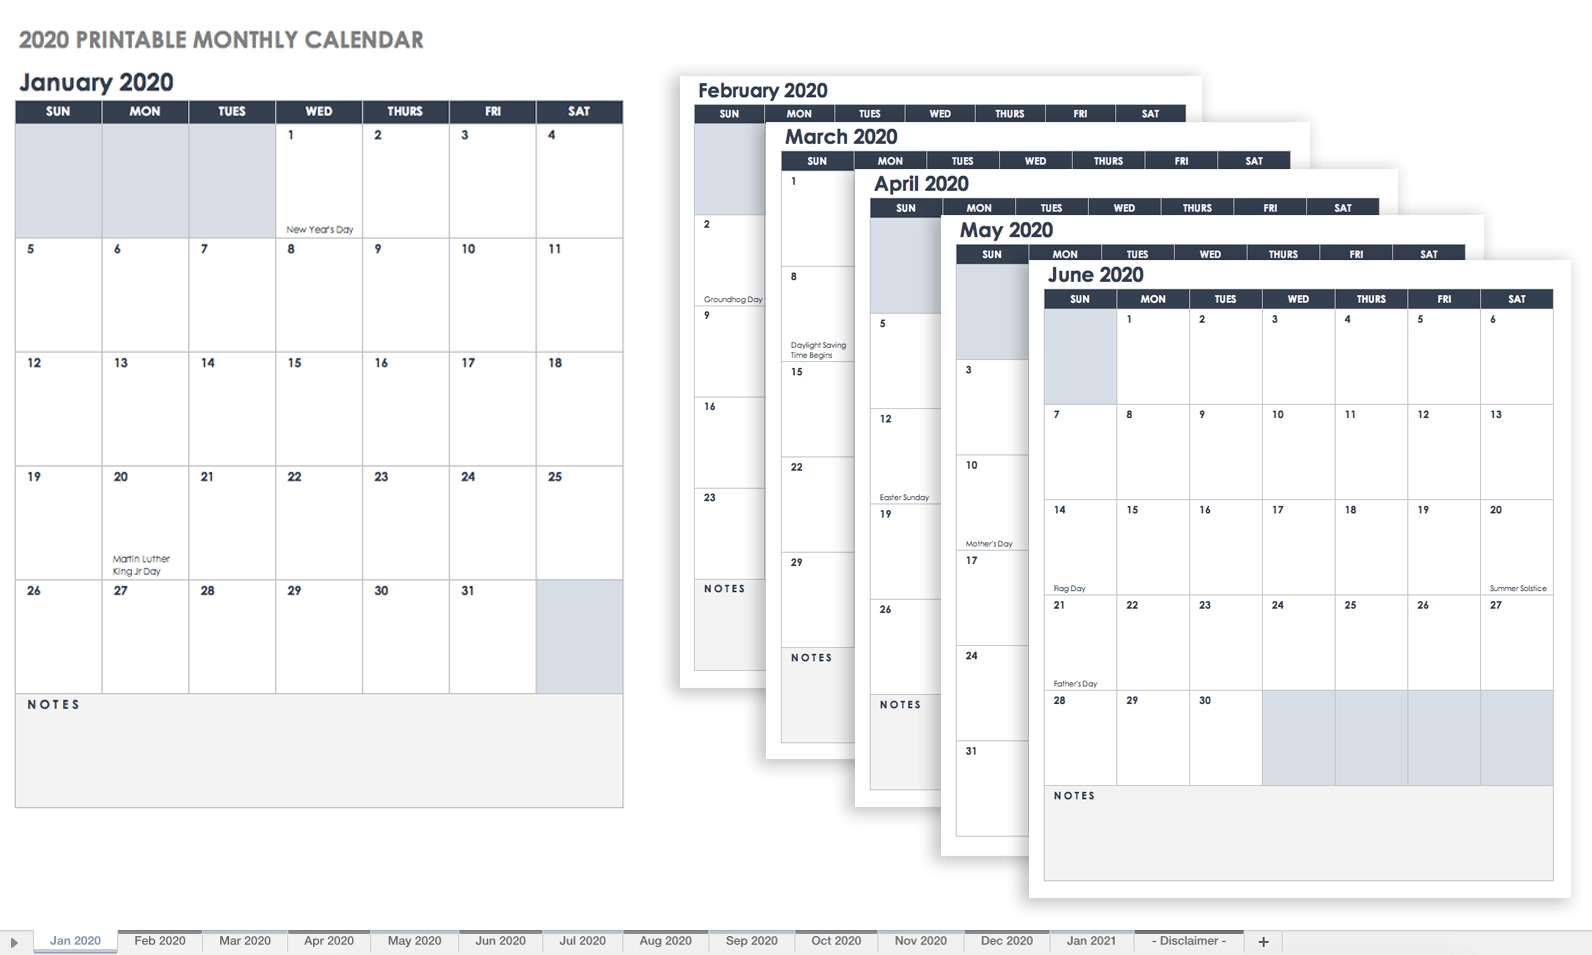 Free Blank Calendar Templates - Smartsheet throughout Large Box Printable Calendar 2020 Google